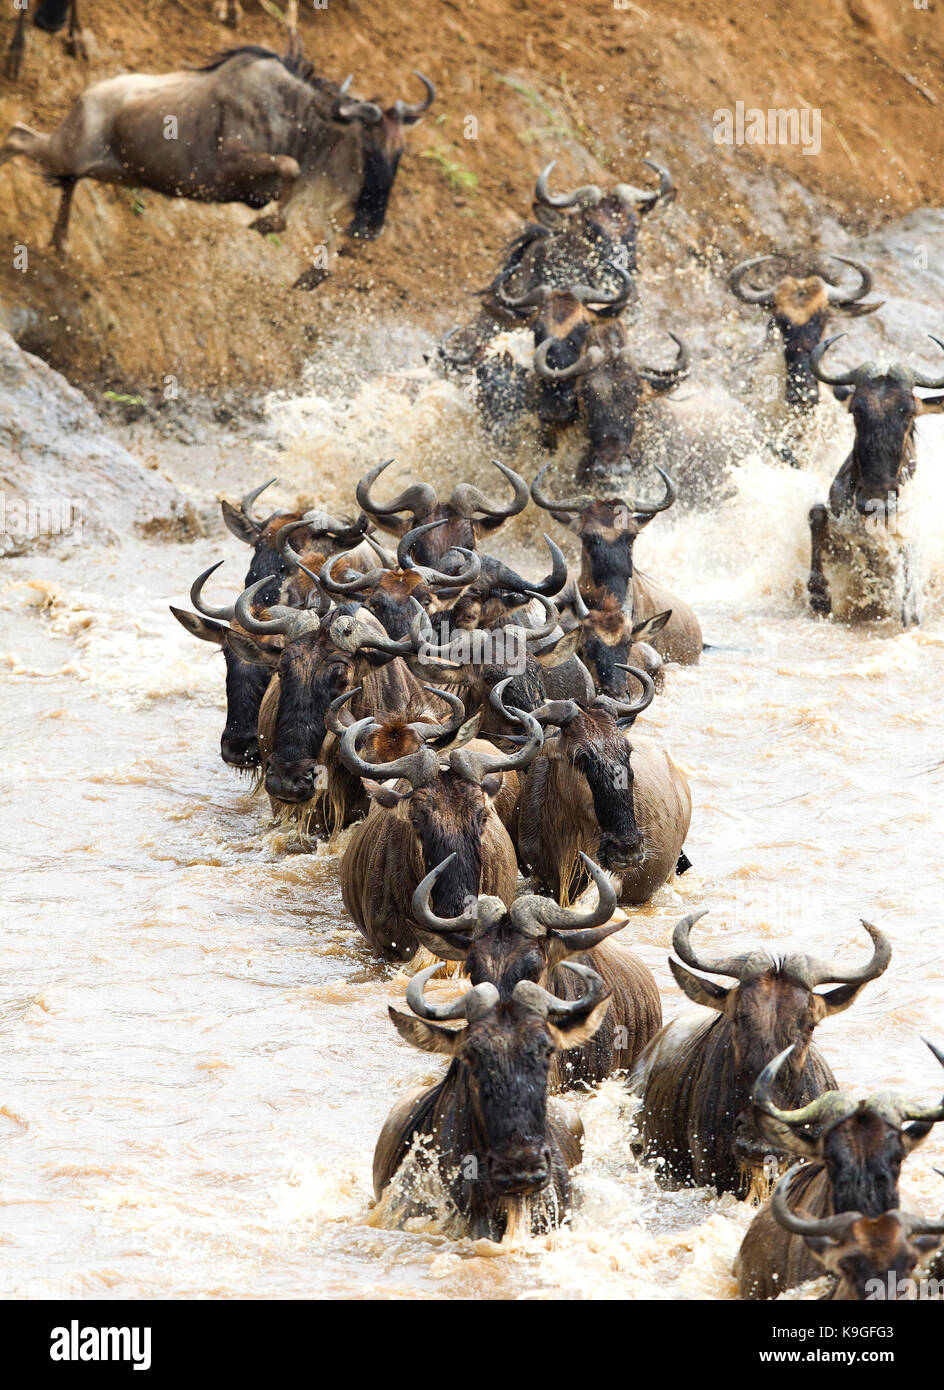 Wildebeests or Gnu crossing the Mara river during the Great Migration - Stock Image